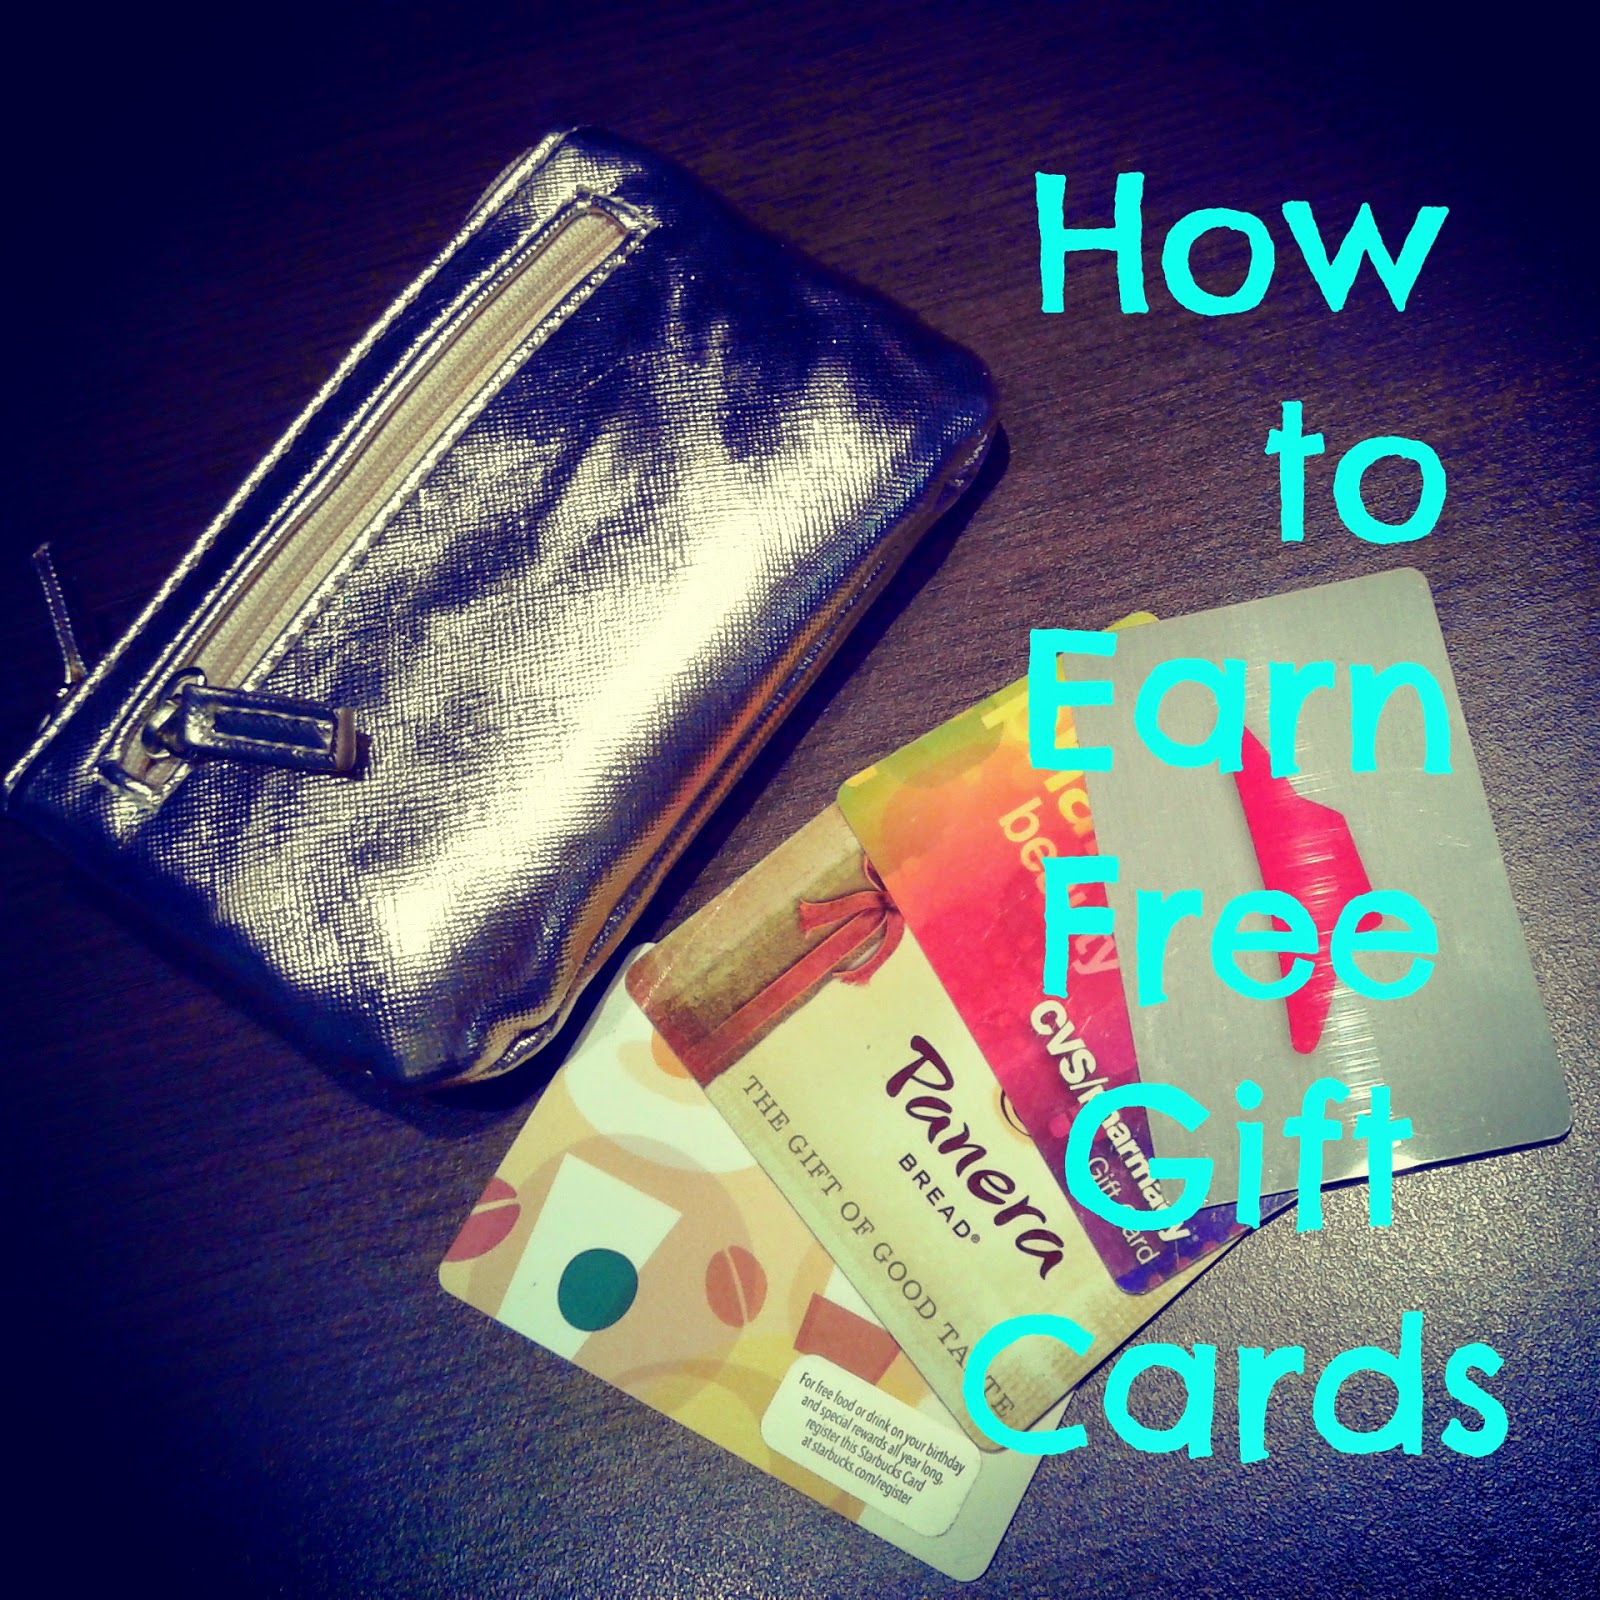 Grace Makes New: 5 Ways To Earn Free Gift Cards